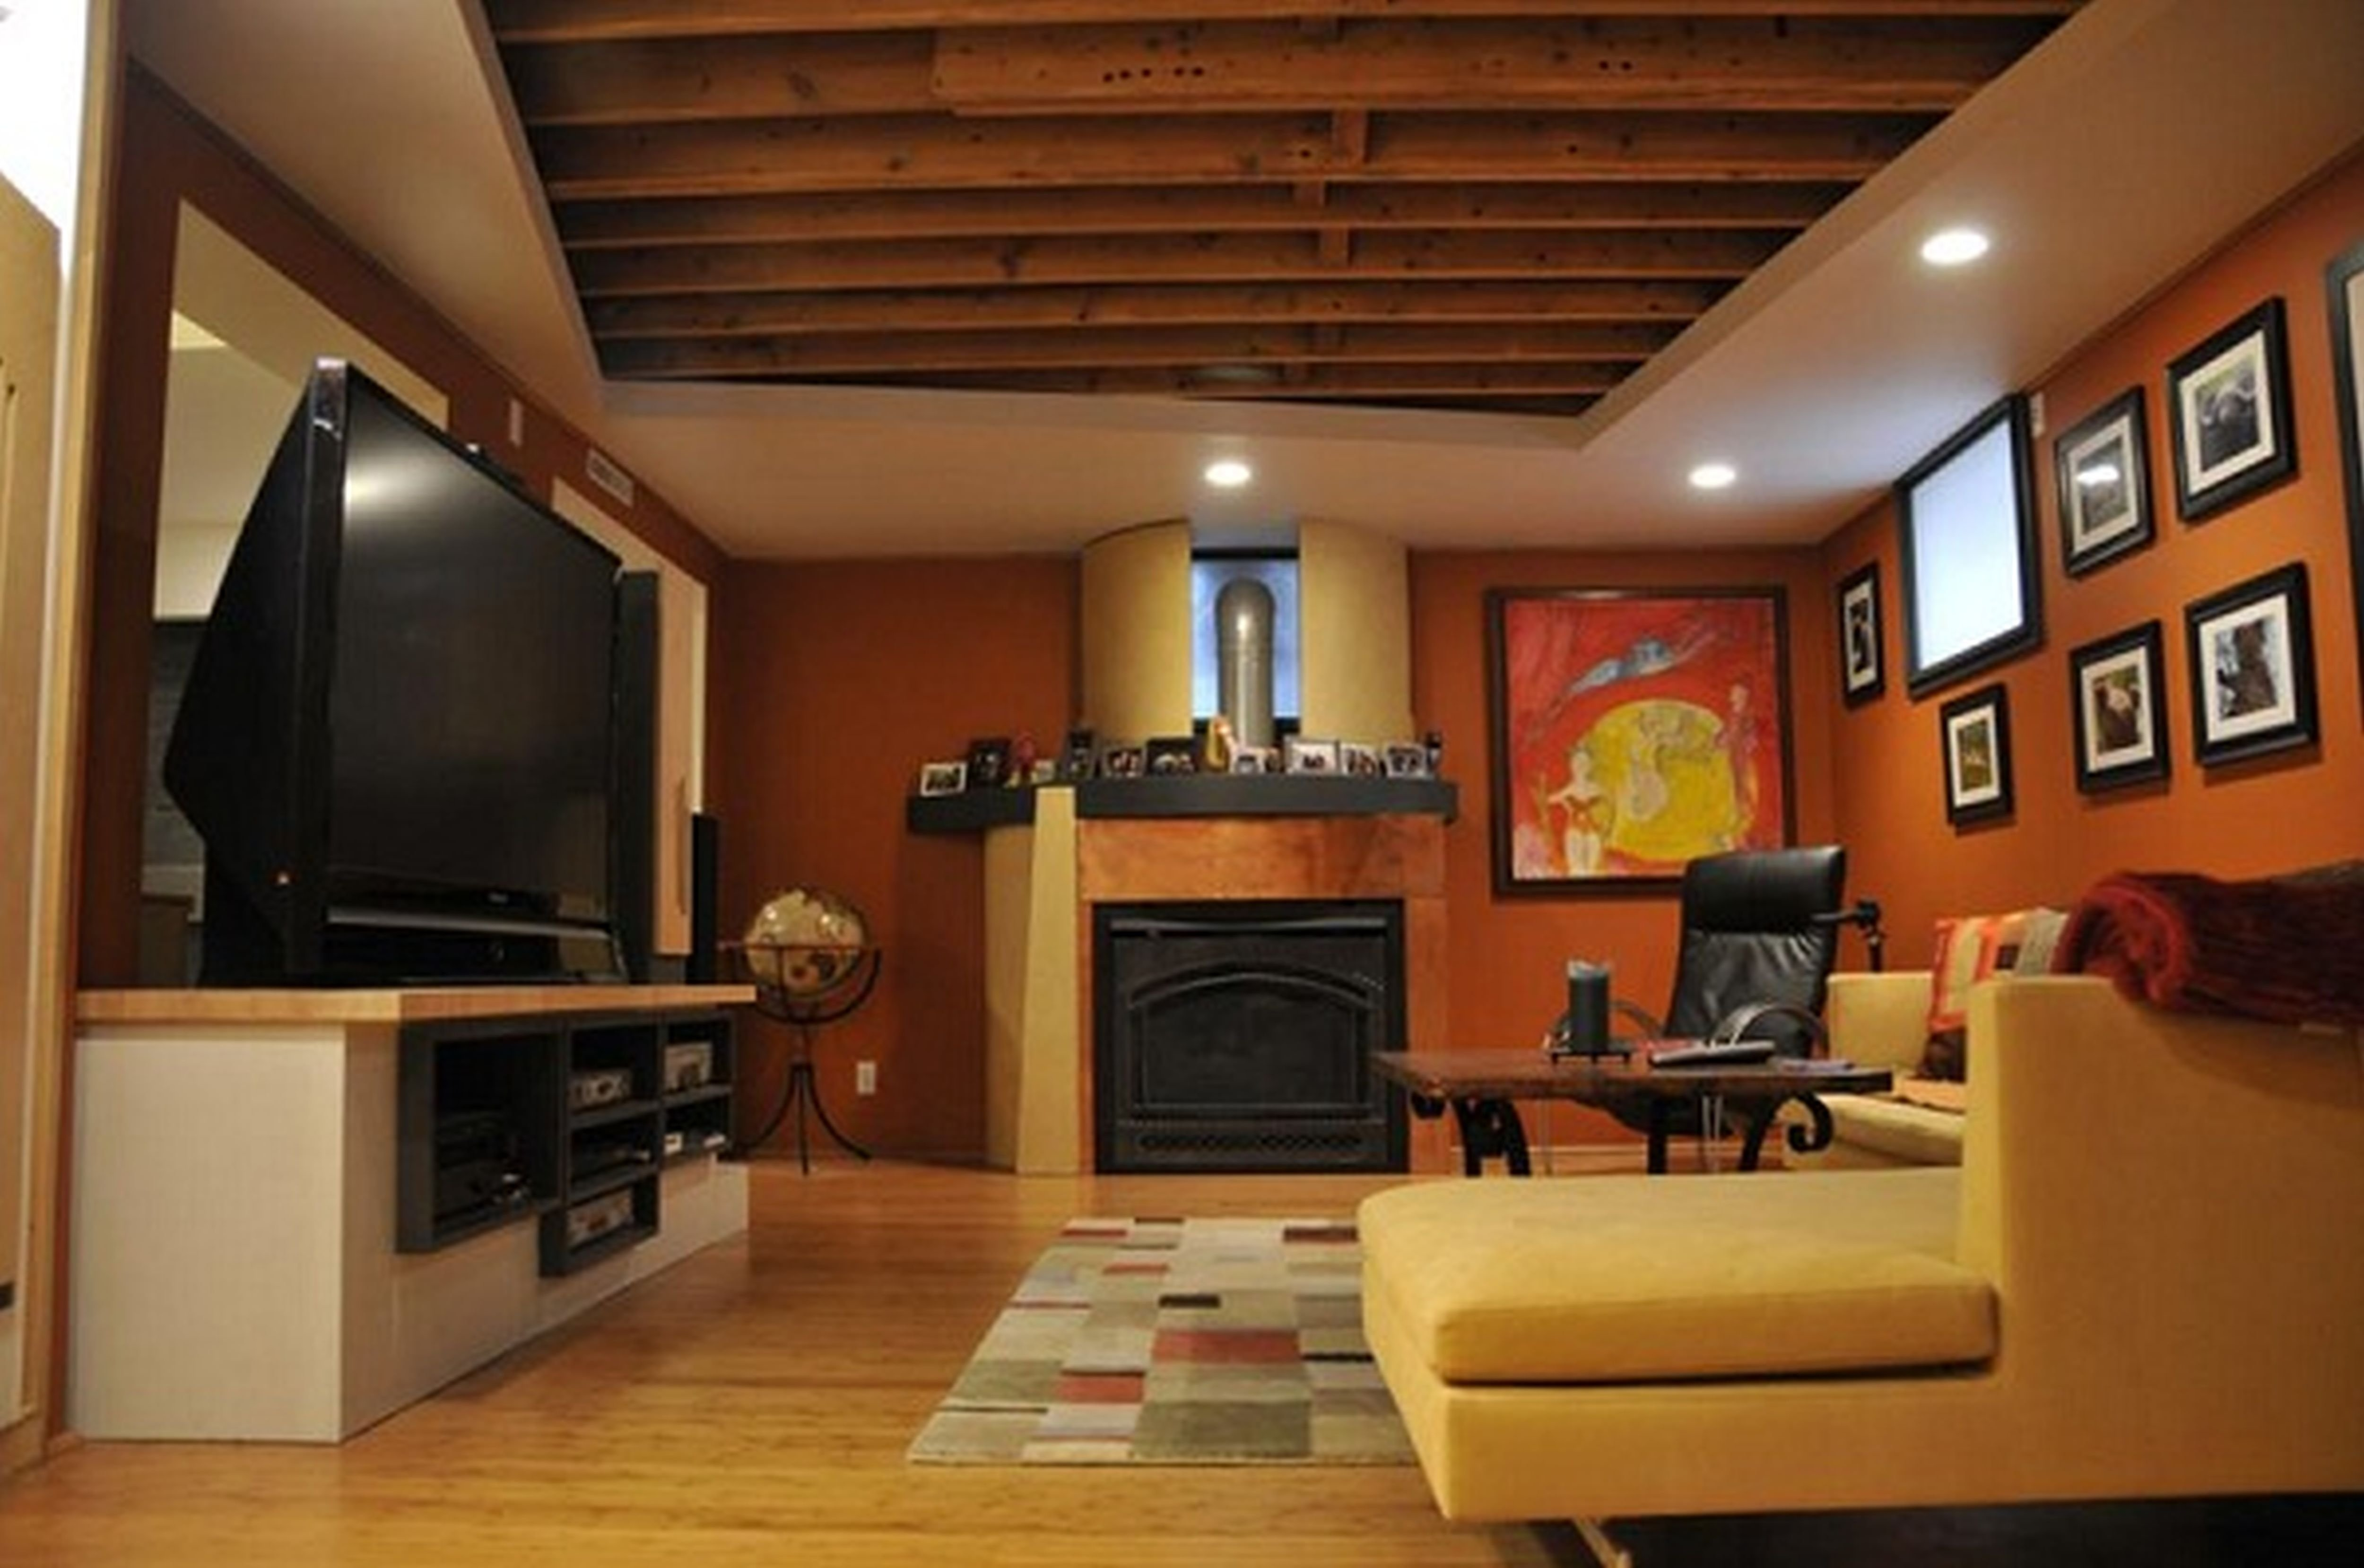 10 Stunning Finished Basement Ideas On A Budget amazing finished basement ideas low ceiling photo gallery of the 2020